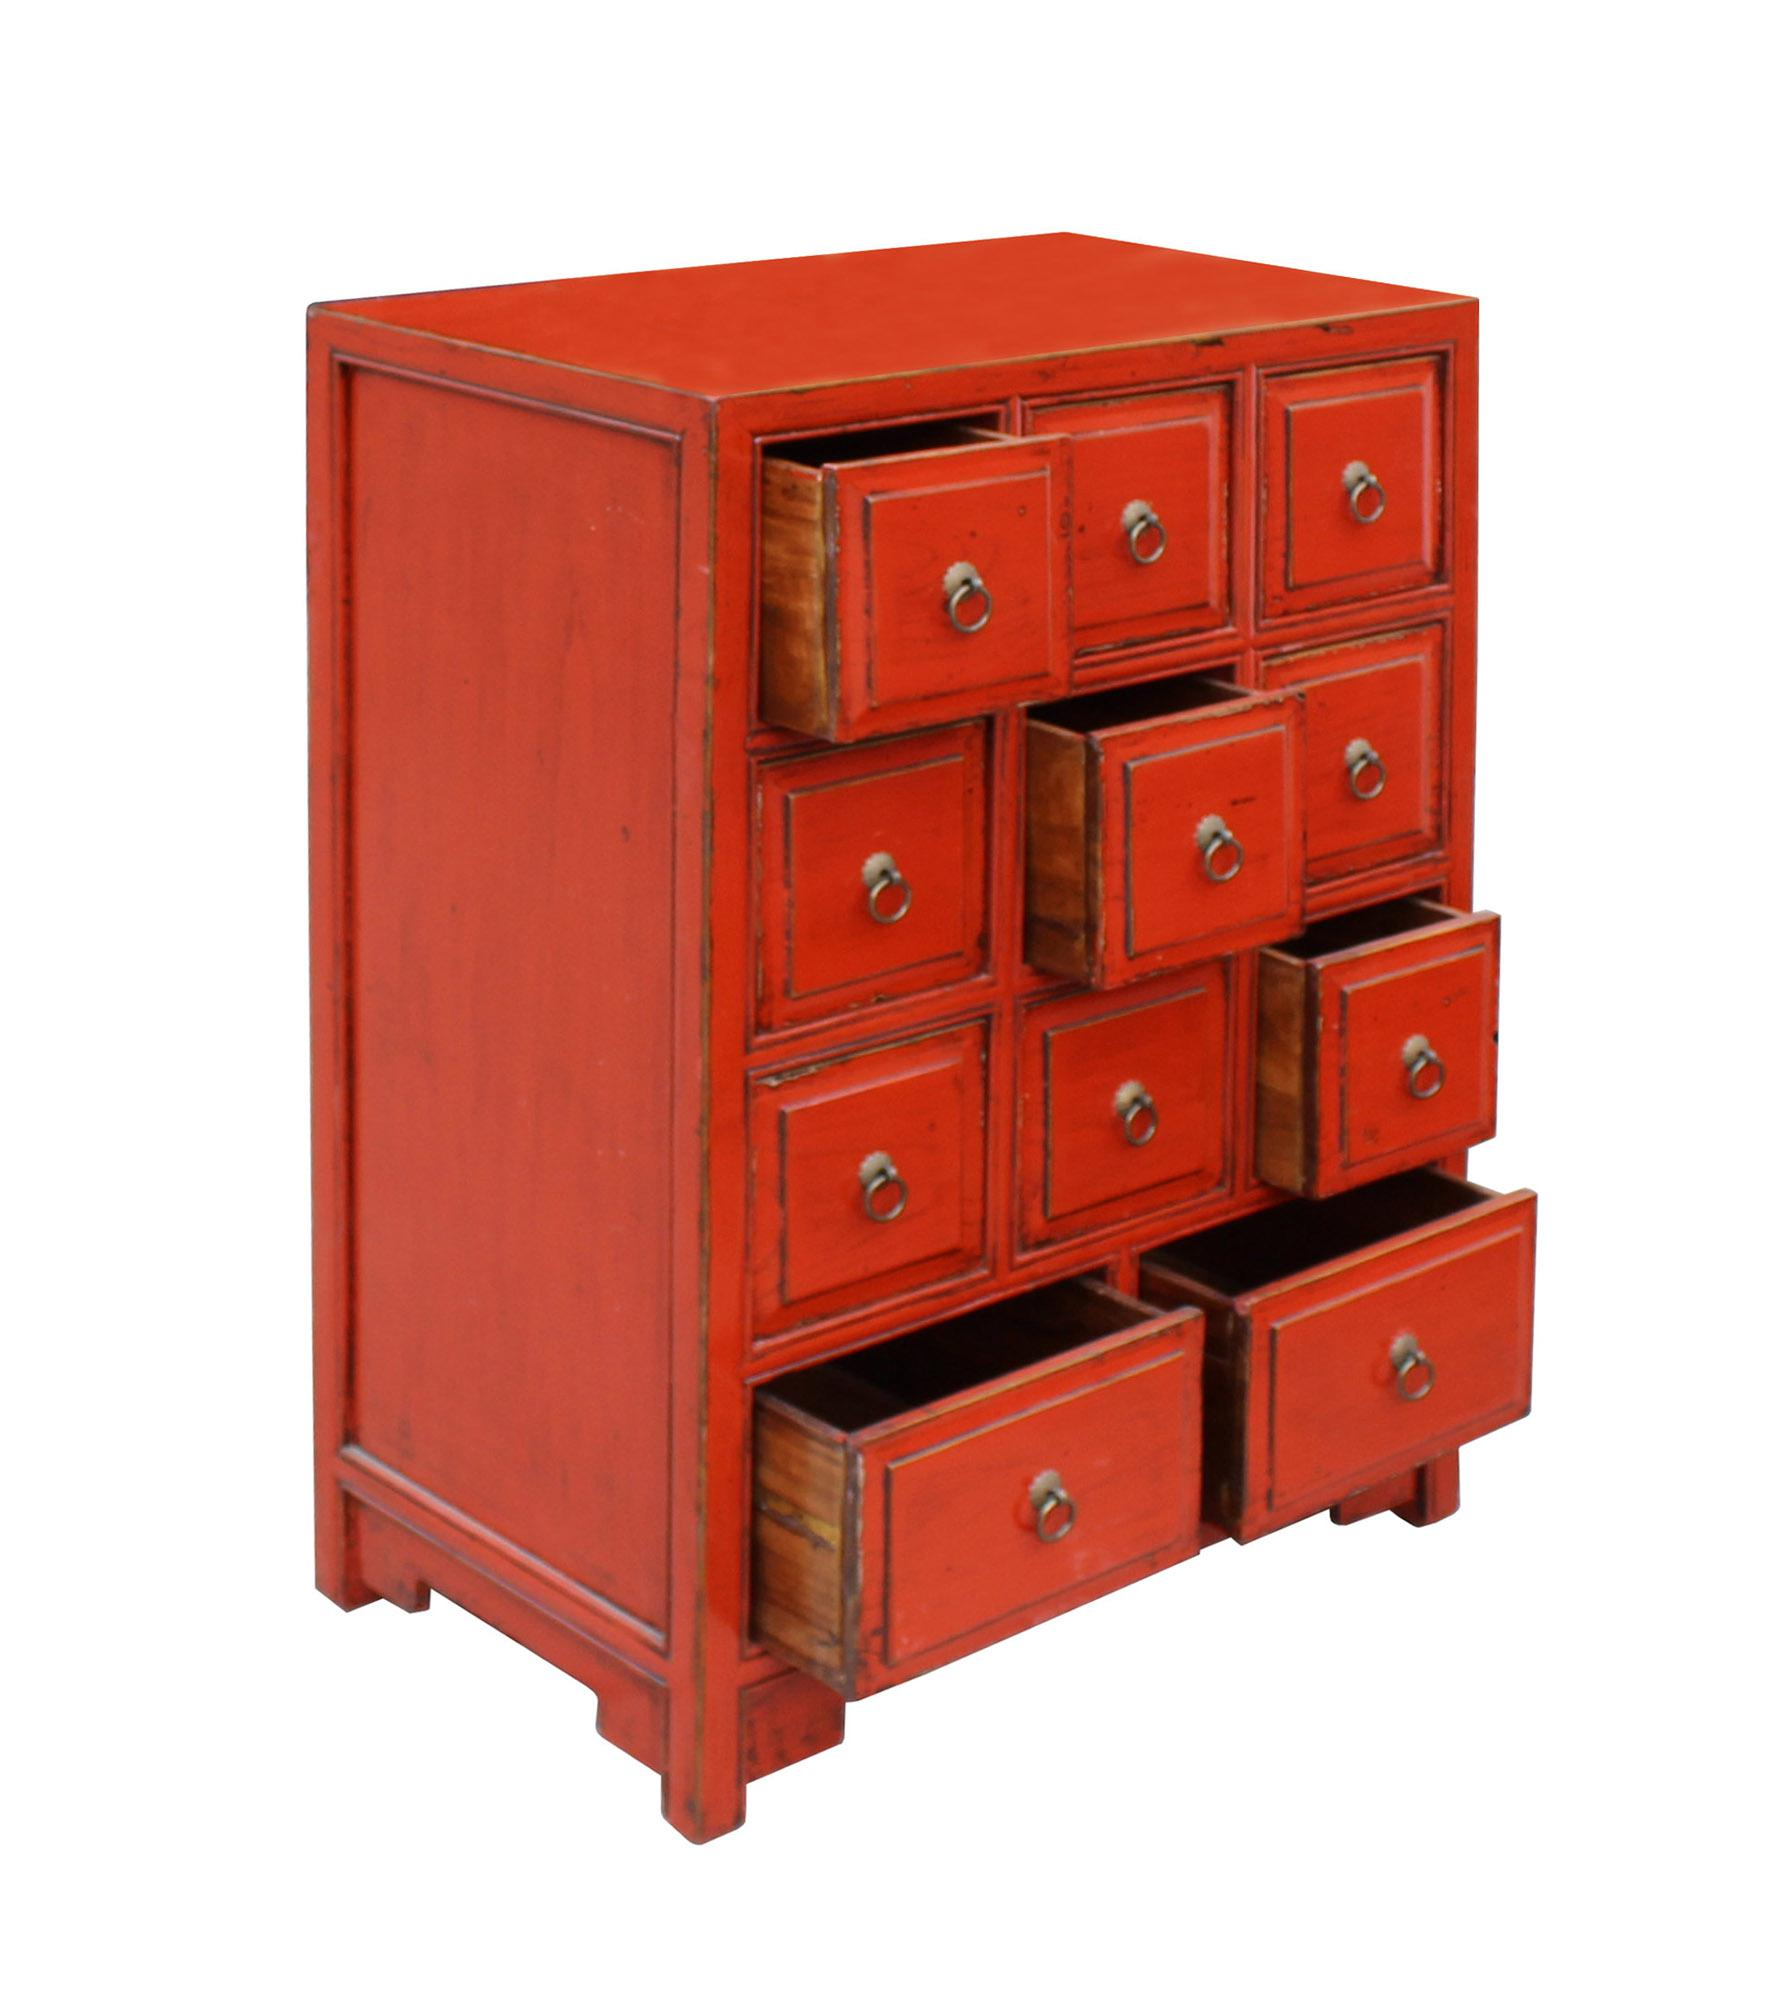 Attirant Chinese Oriental Distressed Red Lacquer 11 Drawers Side Table Cabinet    Image 4 Of 7